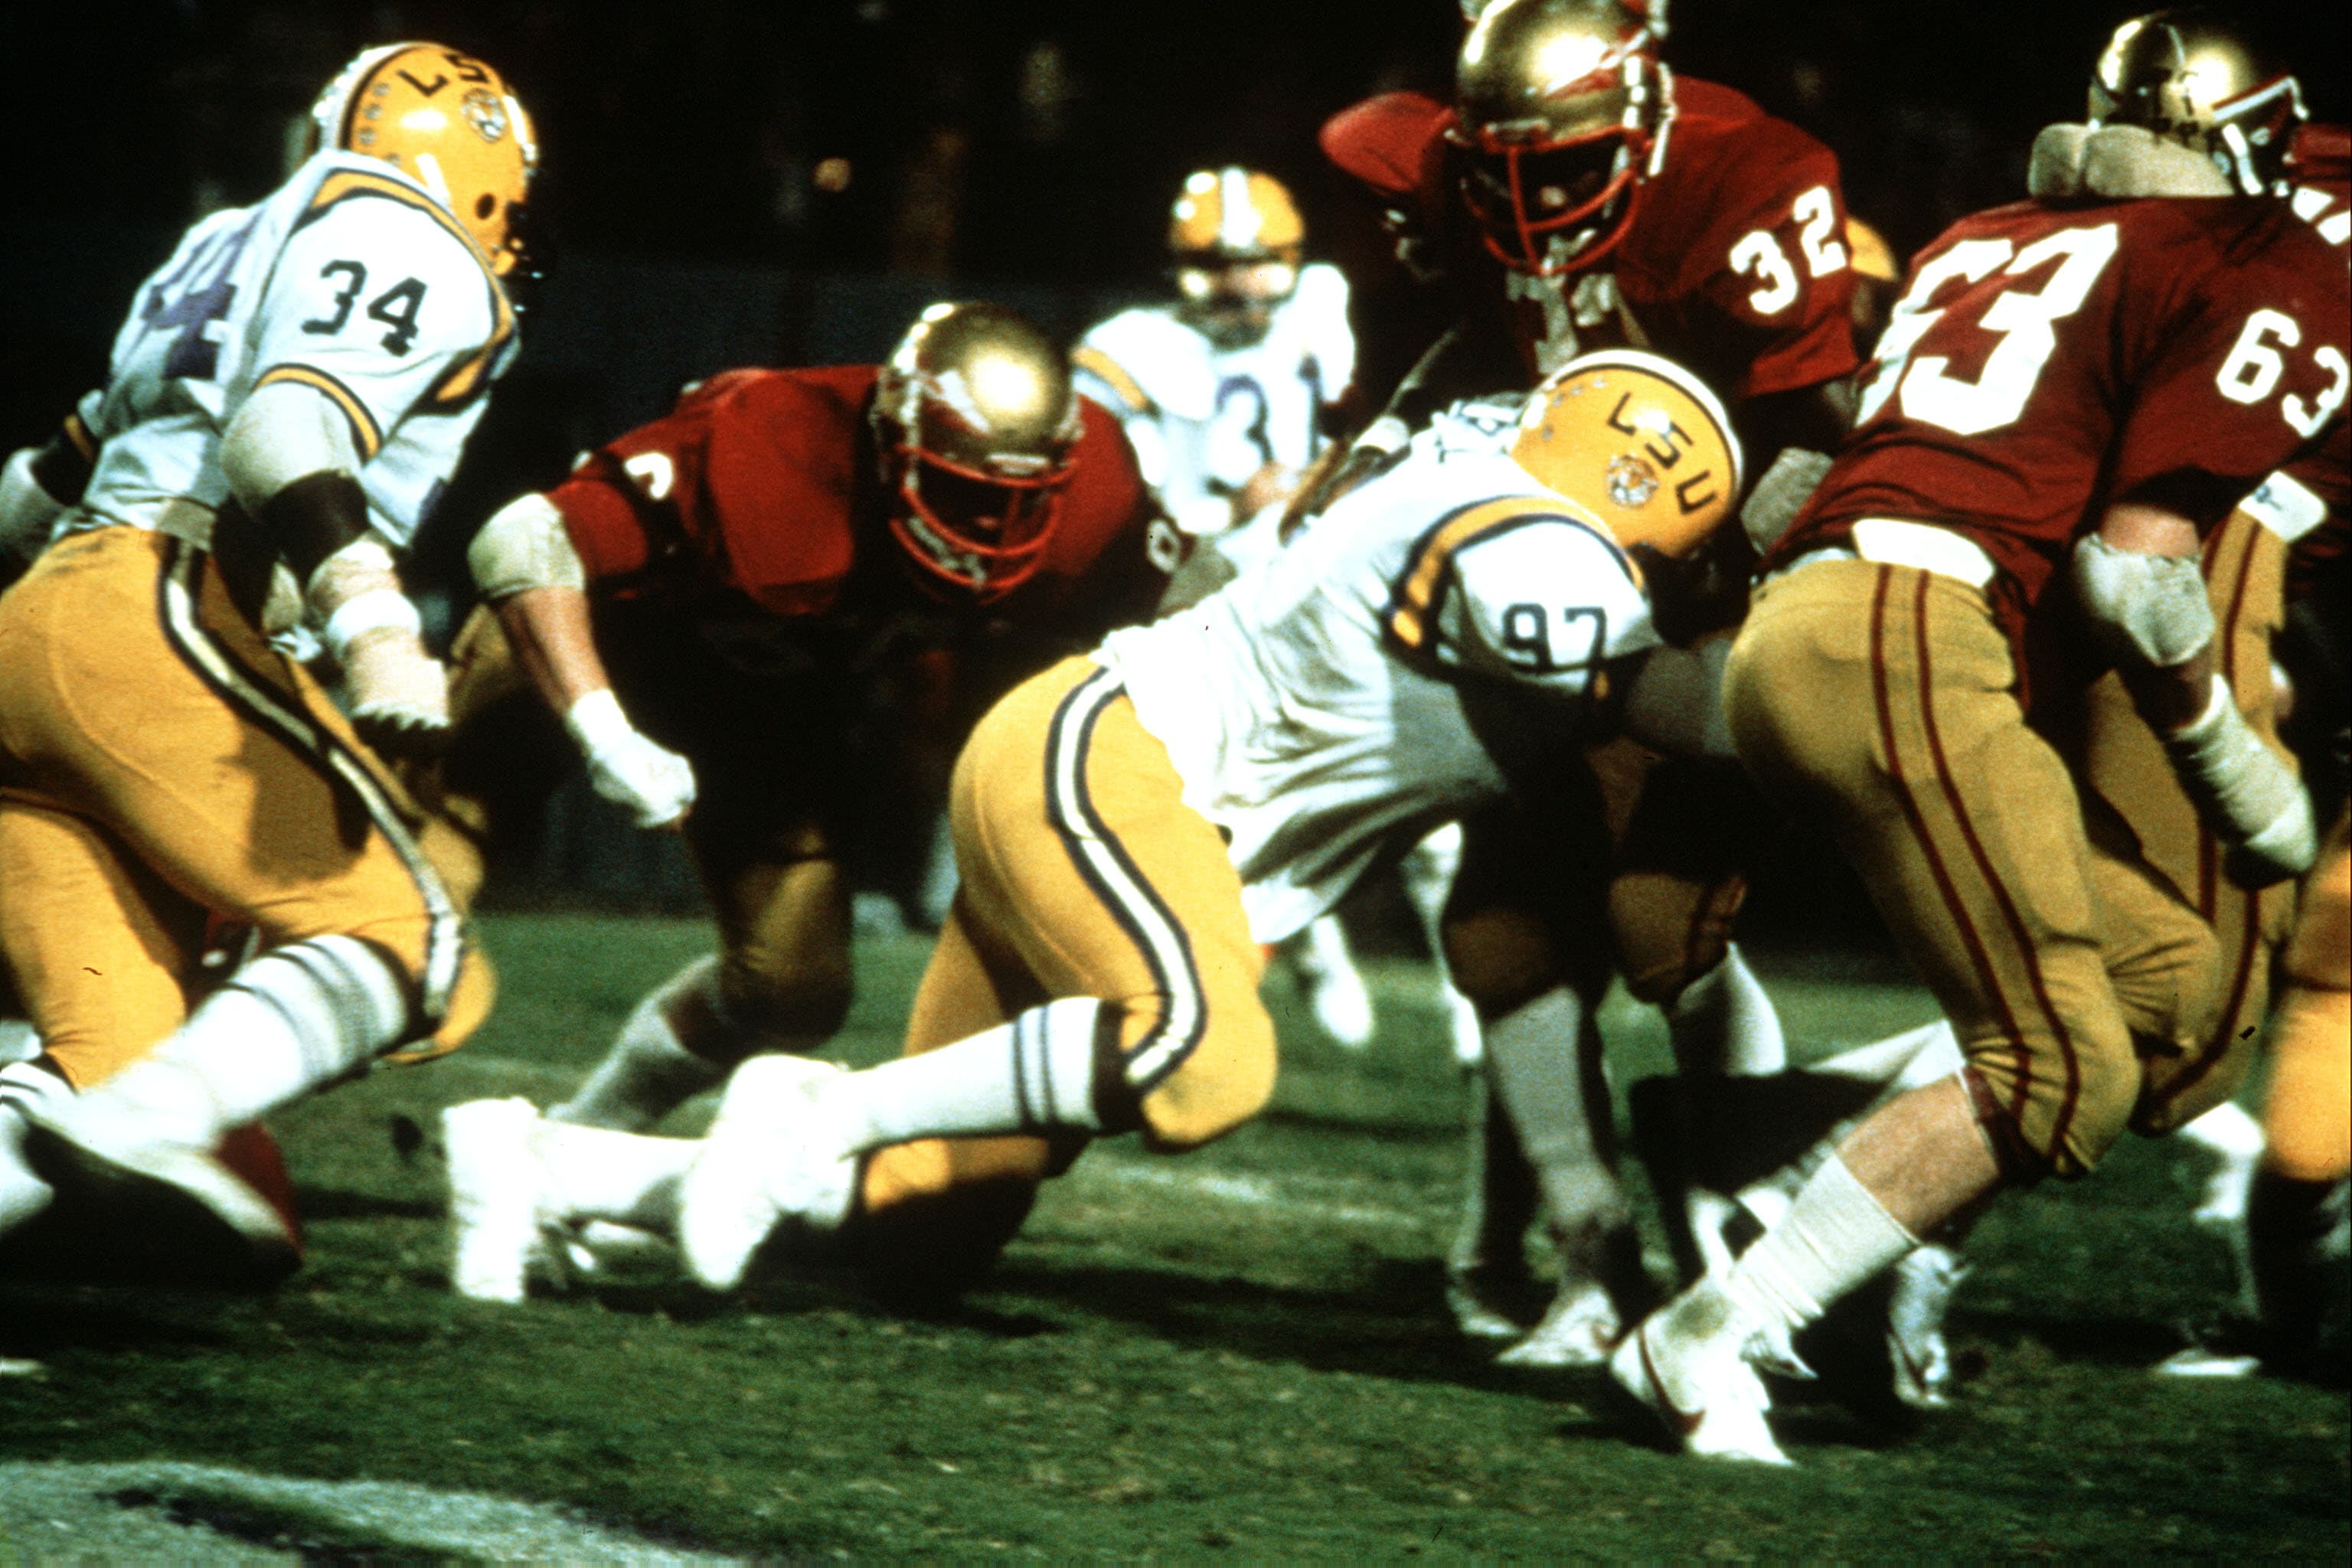 BATON ROUGE, LA - SEPTEMBER 18, 1982: Leonard Marshall #97 defensive end of the Louisiana State University Tigers tackles his opponent at Tiger Stadium in Baton Rouge, Louisiana. (Photo by Louisiana State University/Getty Images)